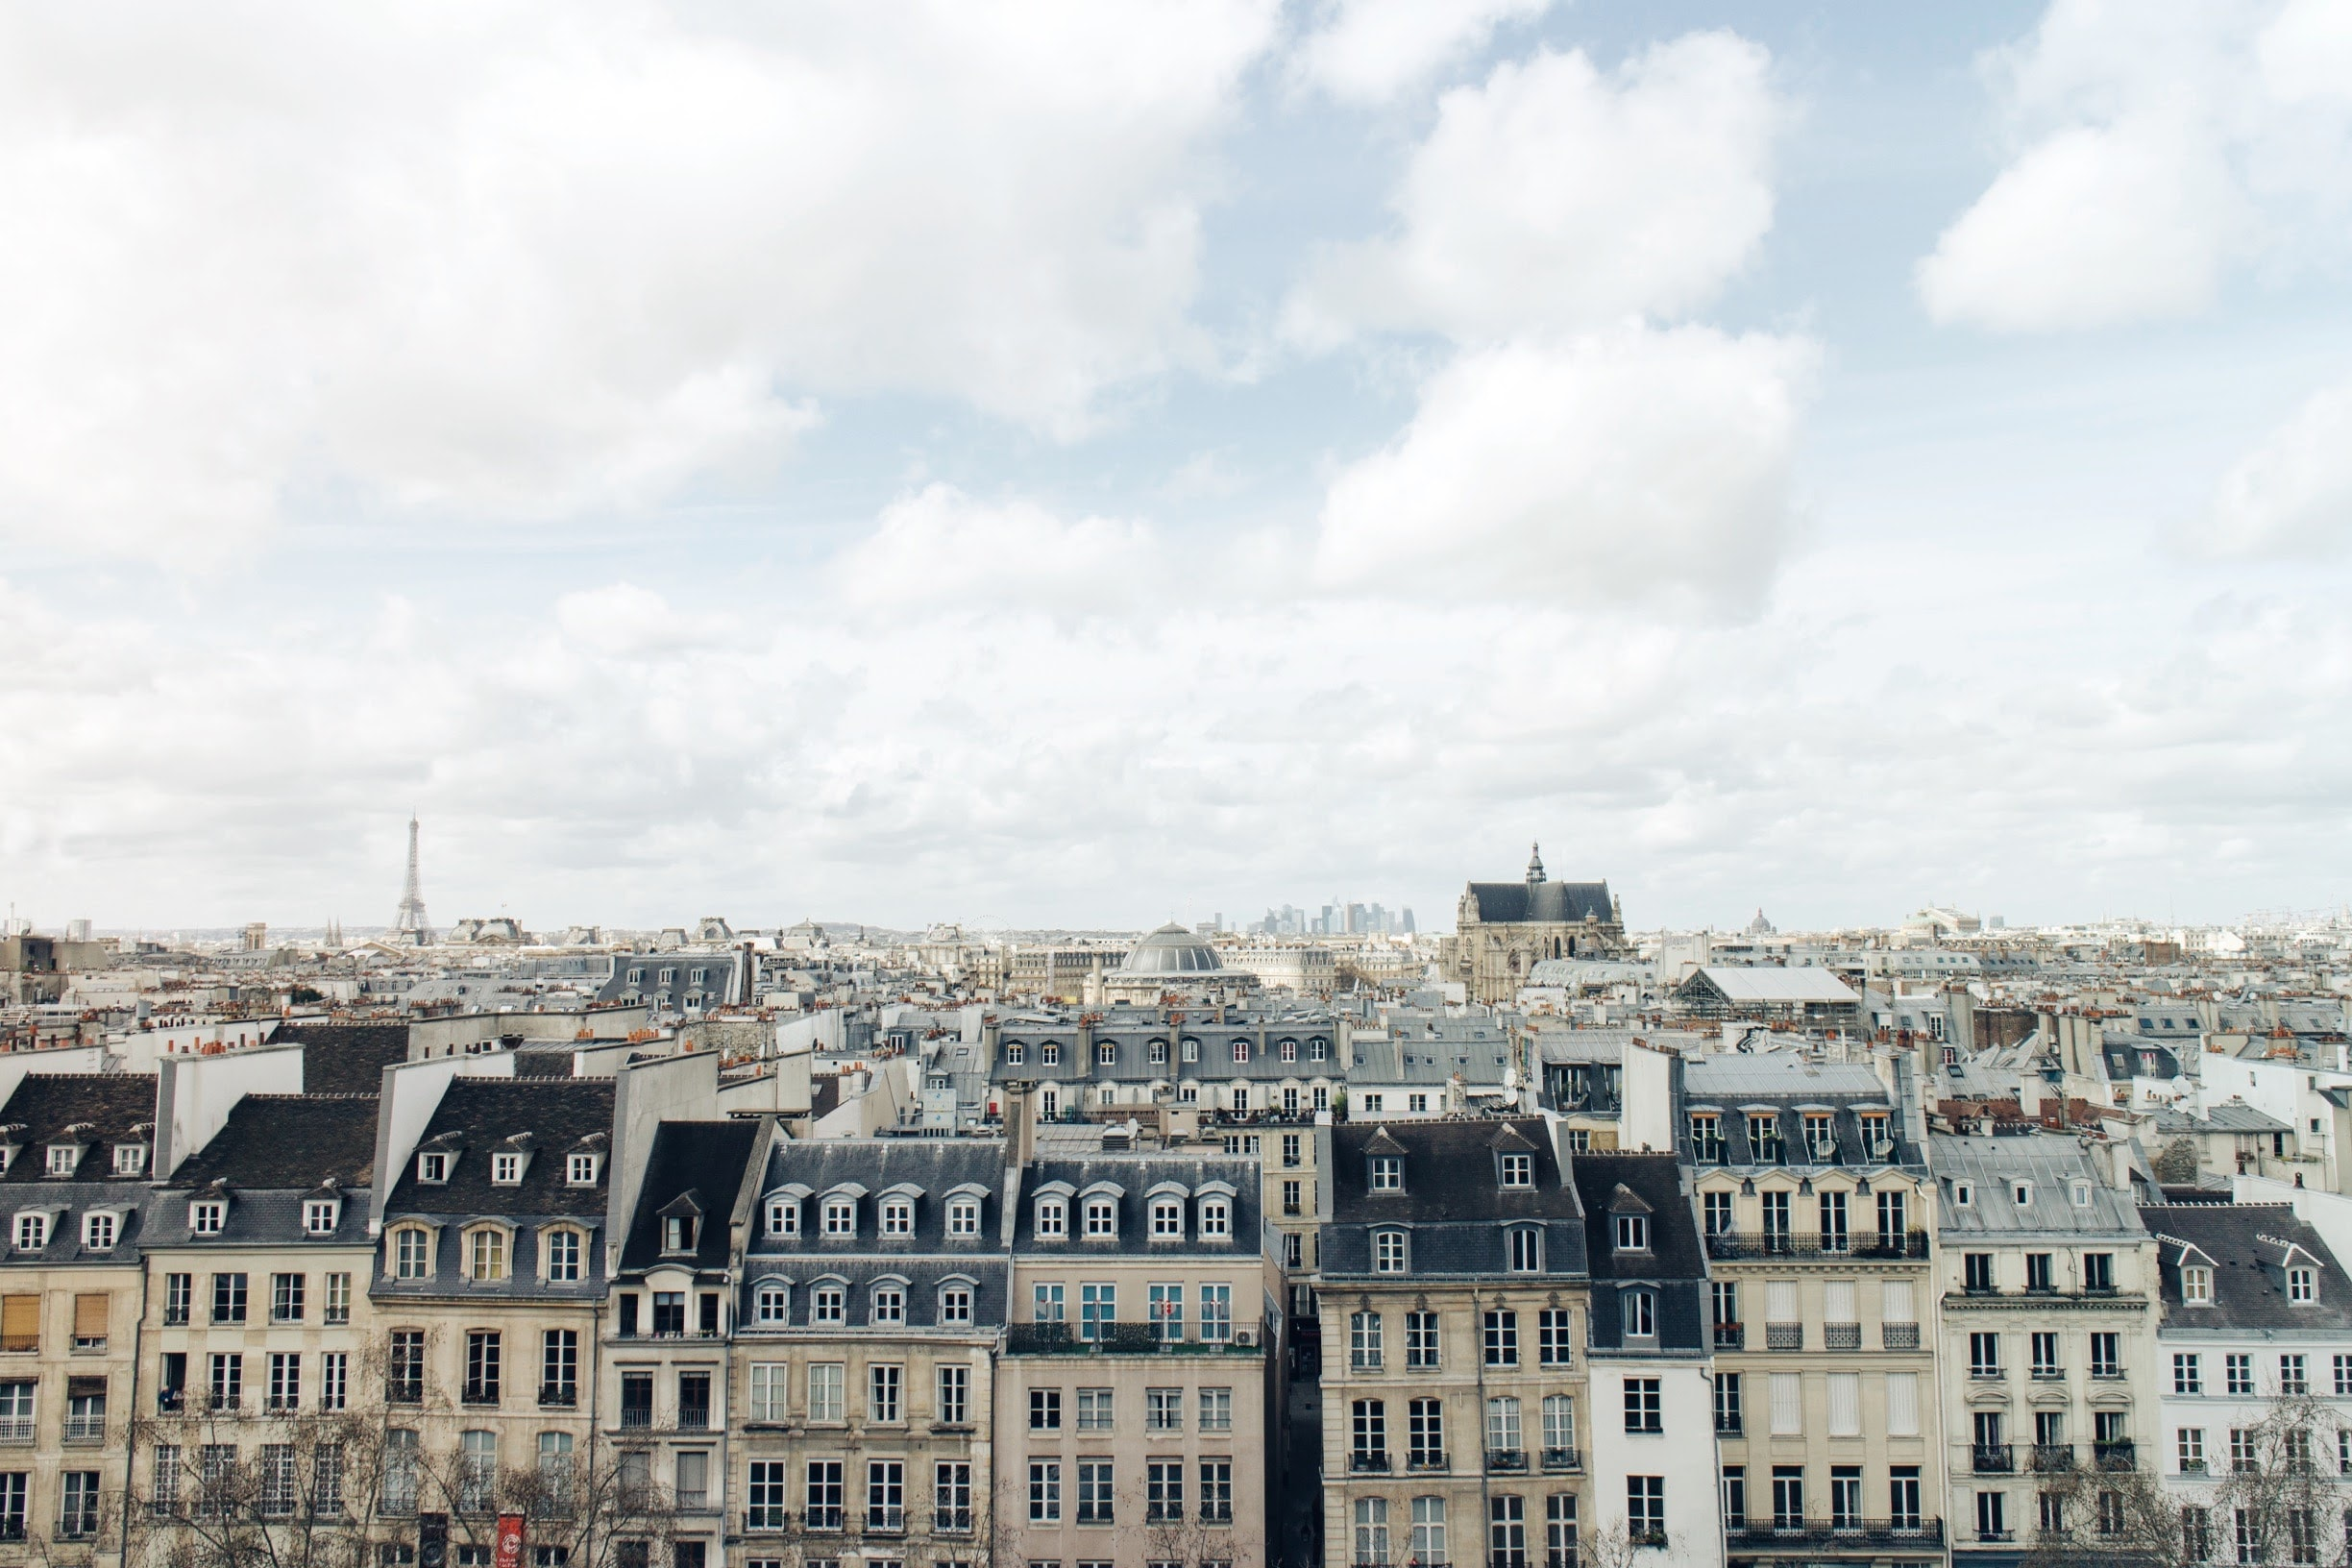 A skyline view of Paris buildings on a bright day with Eiffel Tower in the distance